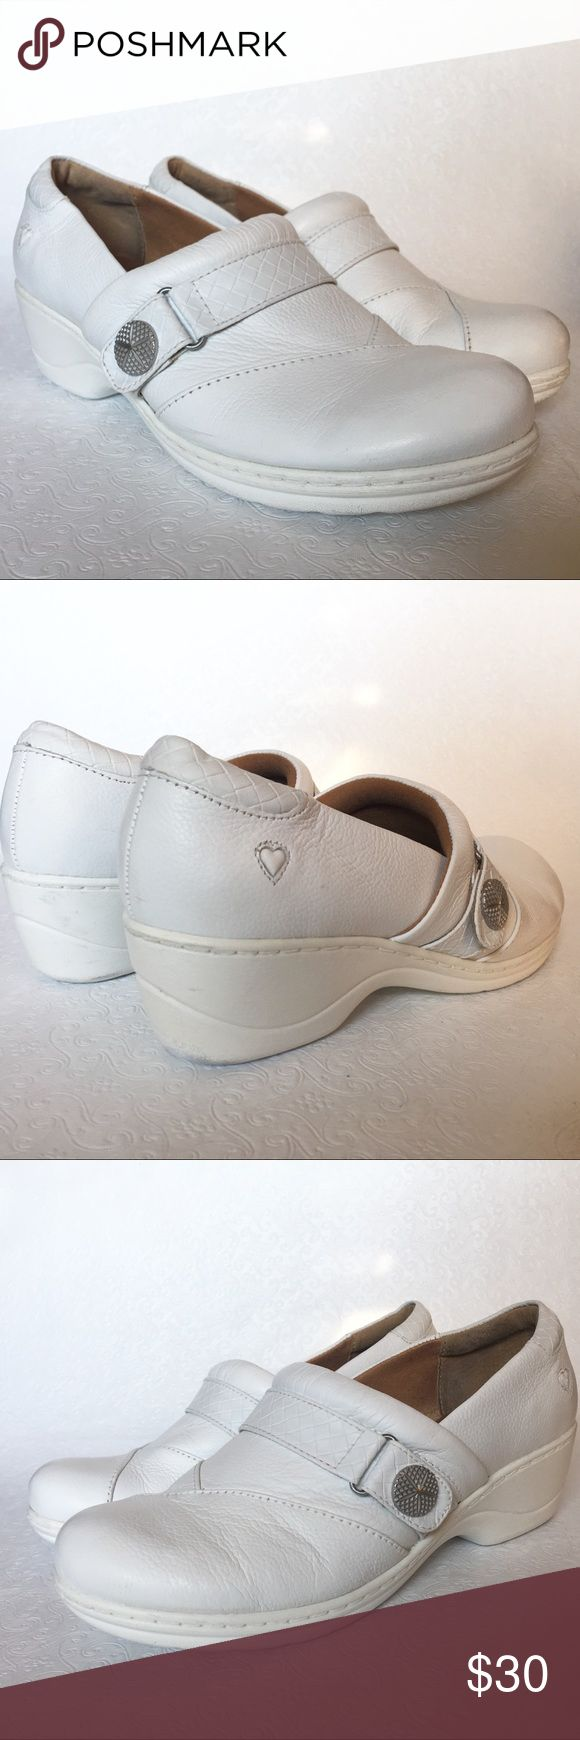 Nurse Mates- Leather slip on nursing shoes Full-grain leather Padded collar Pillow Top insole Slip-Resistant rubber bottom Heel height: 1.5 inches w/ a half inch platform  Some minor scuffing- good used condition Nurse Mates Shoes Mules & Clogs